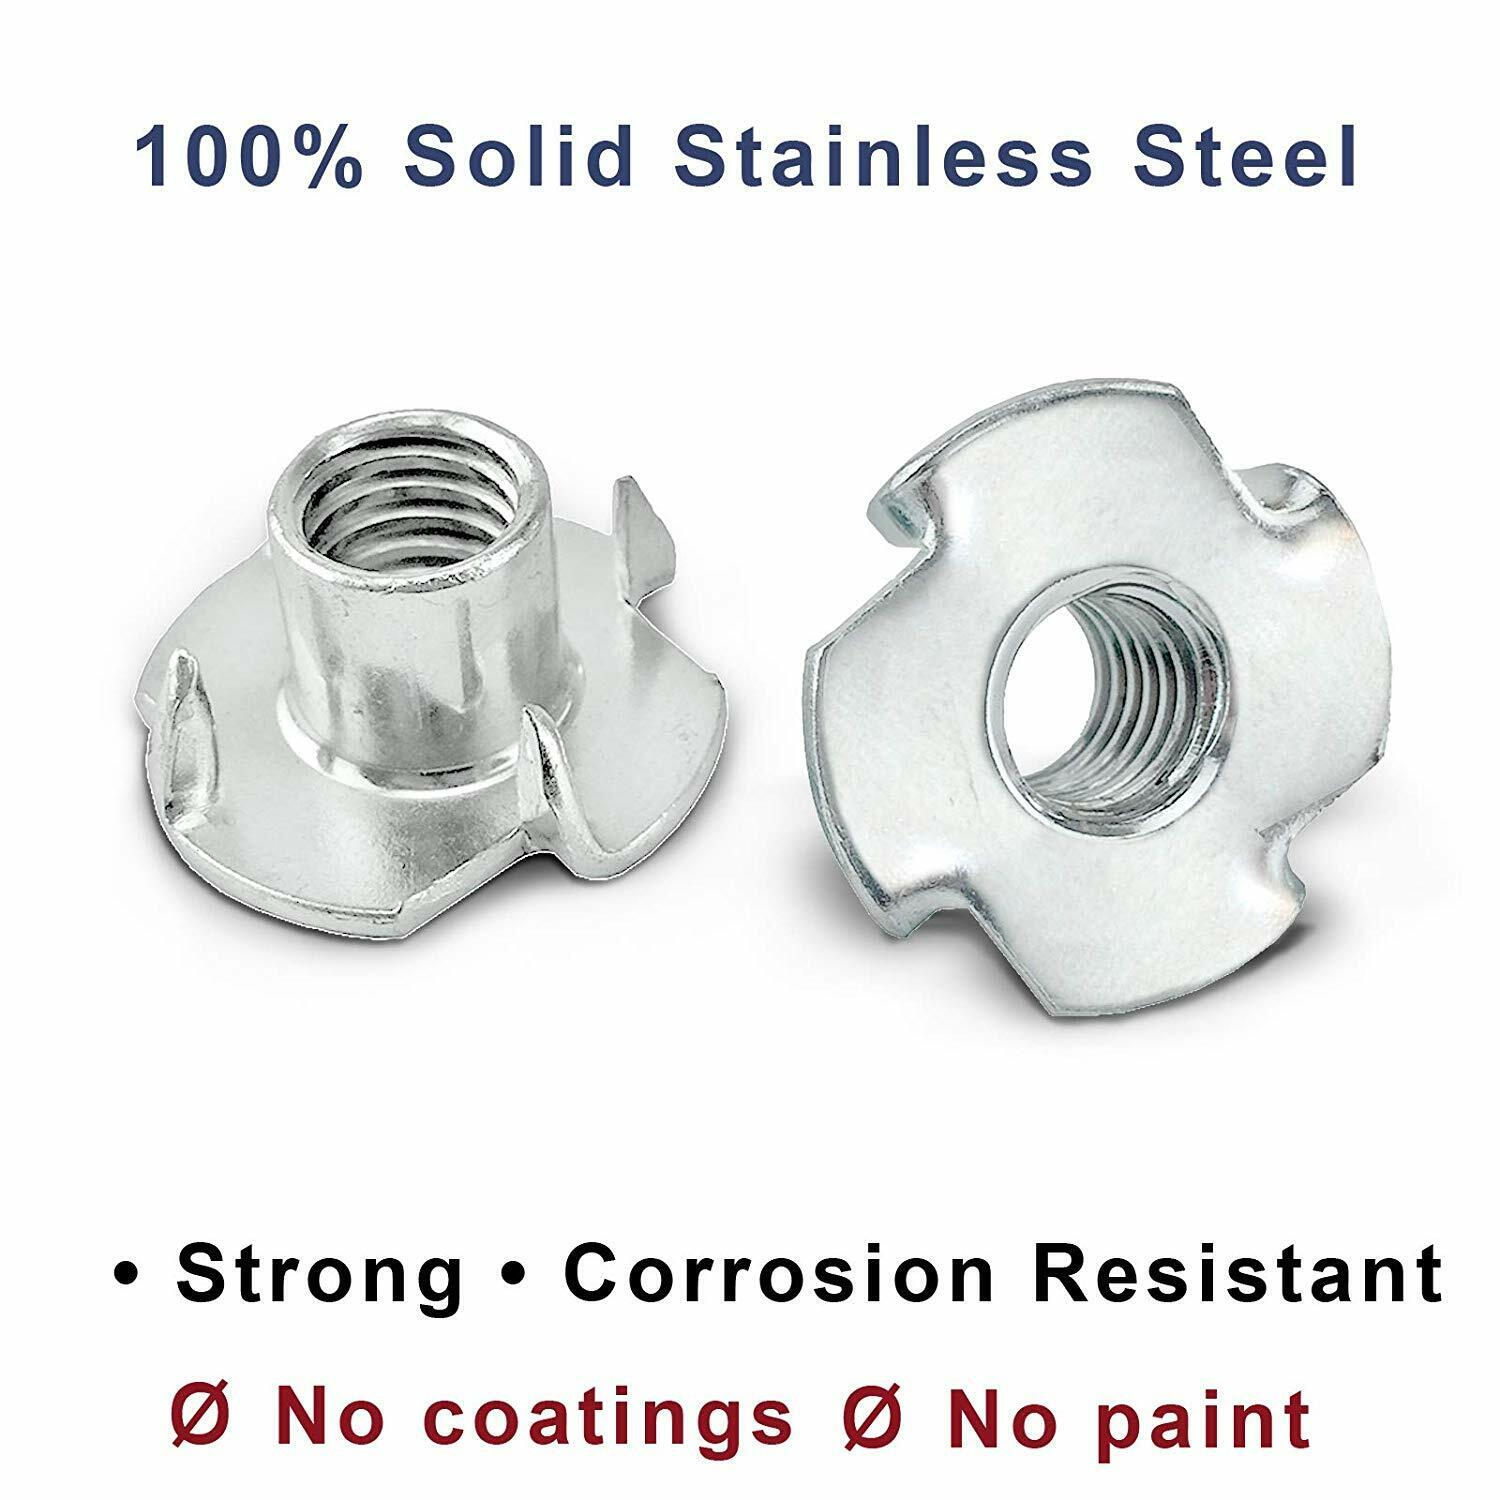 25//PCS T-Nuts 18-8 Stainless Steel 1//4-20 x 5//16 Barrel Lgth x 4-Prong